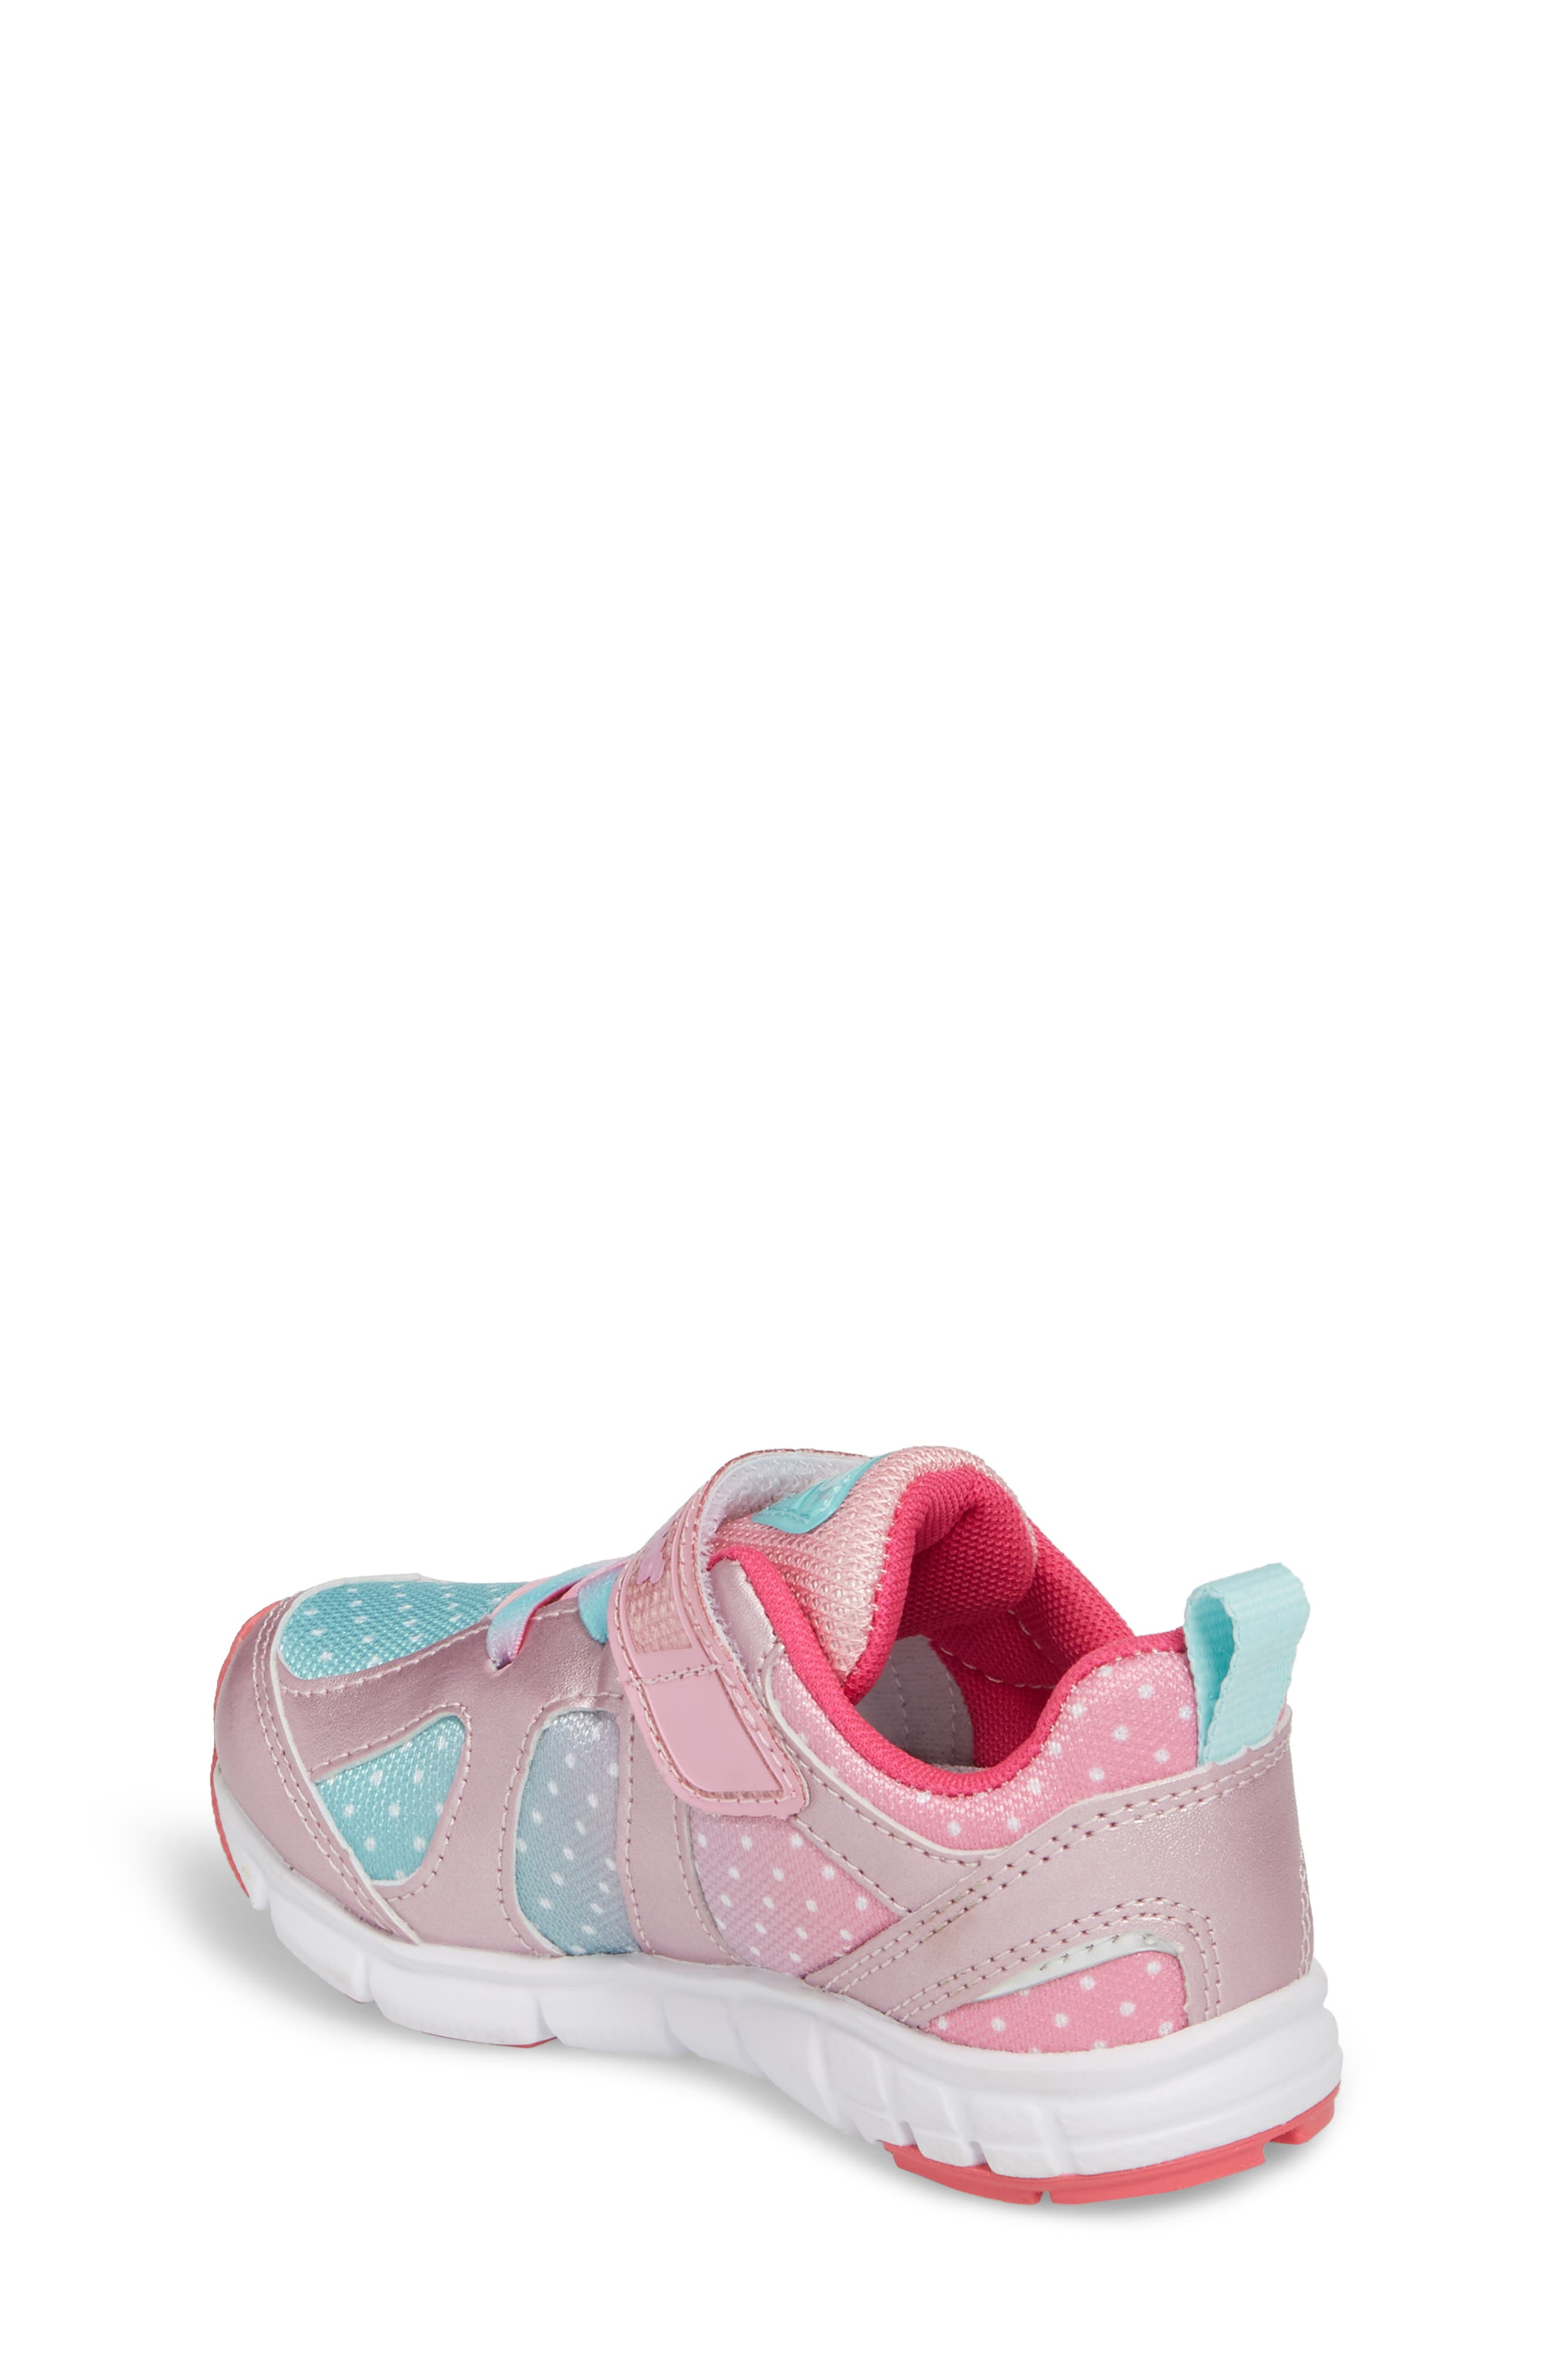 TSUKIHOSHI, Rainbow Washable Sneaker, Alternate thumbnail 2, color, ROSE/ MINT